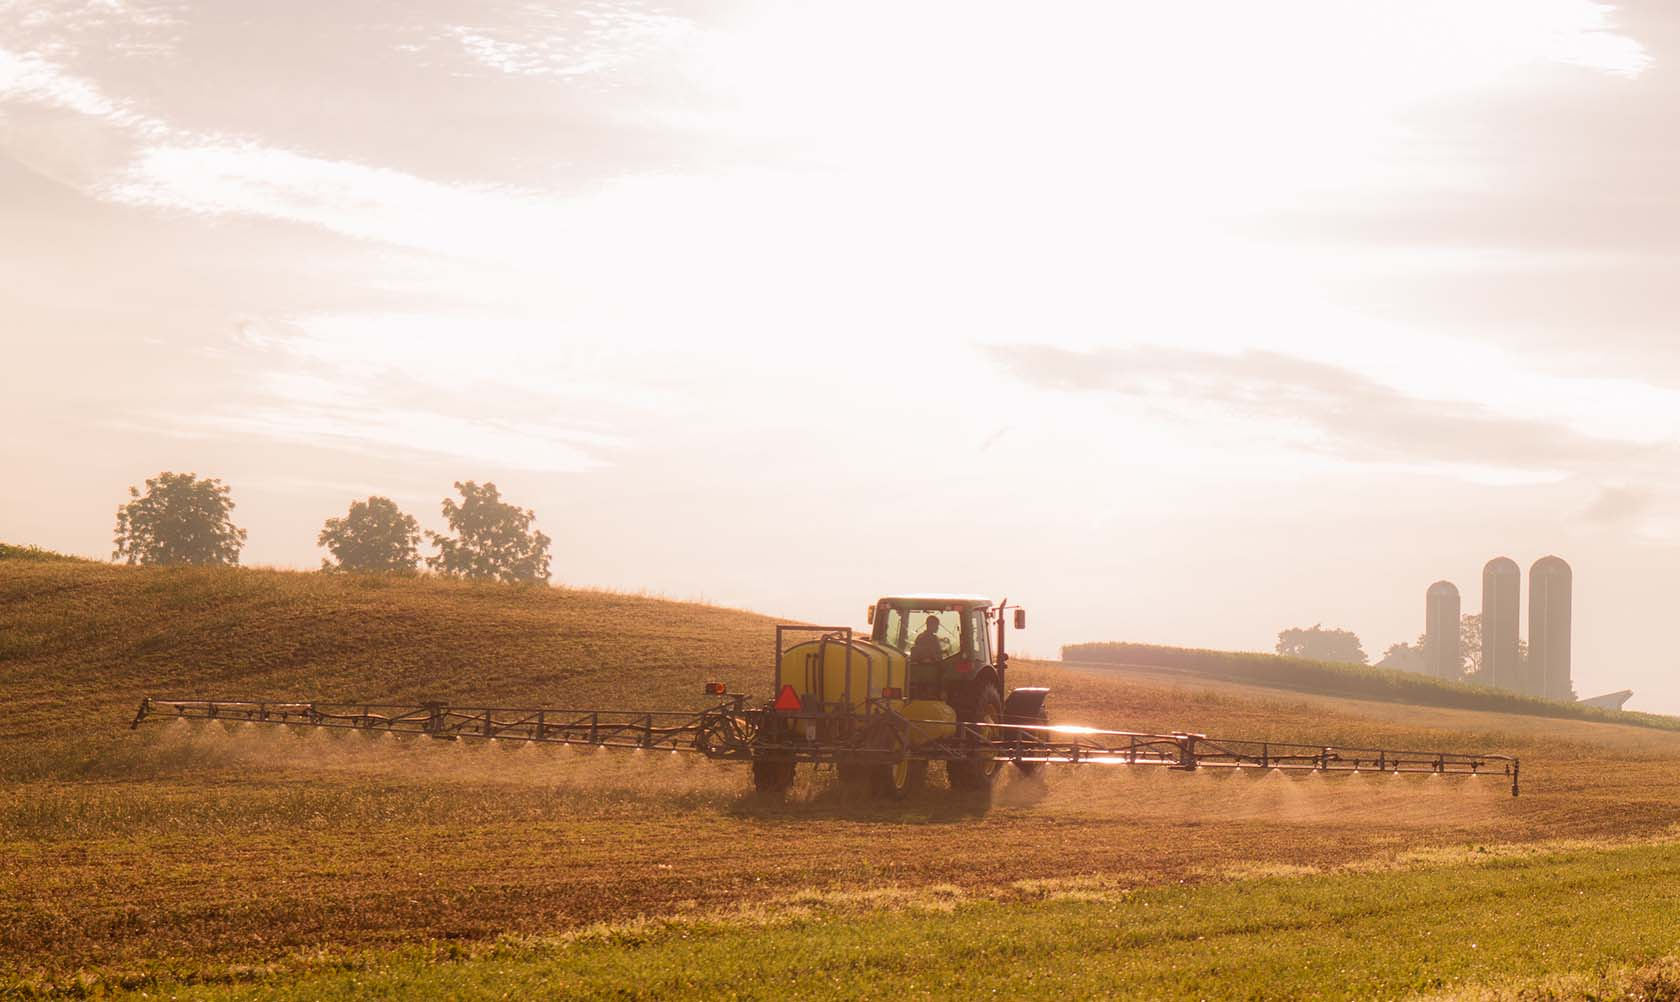 Farm equipment spraying crops